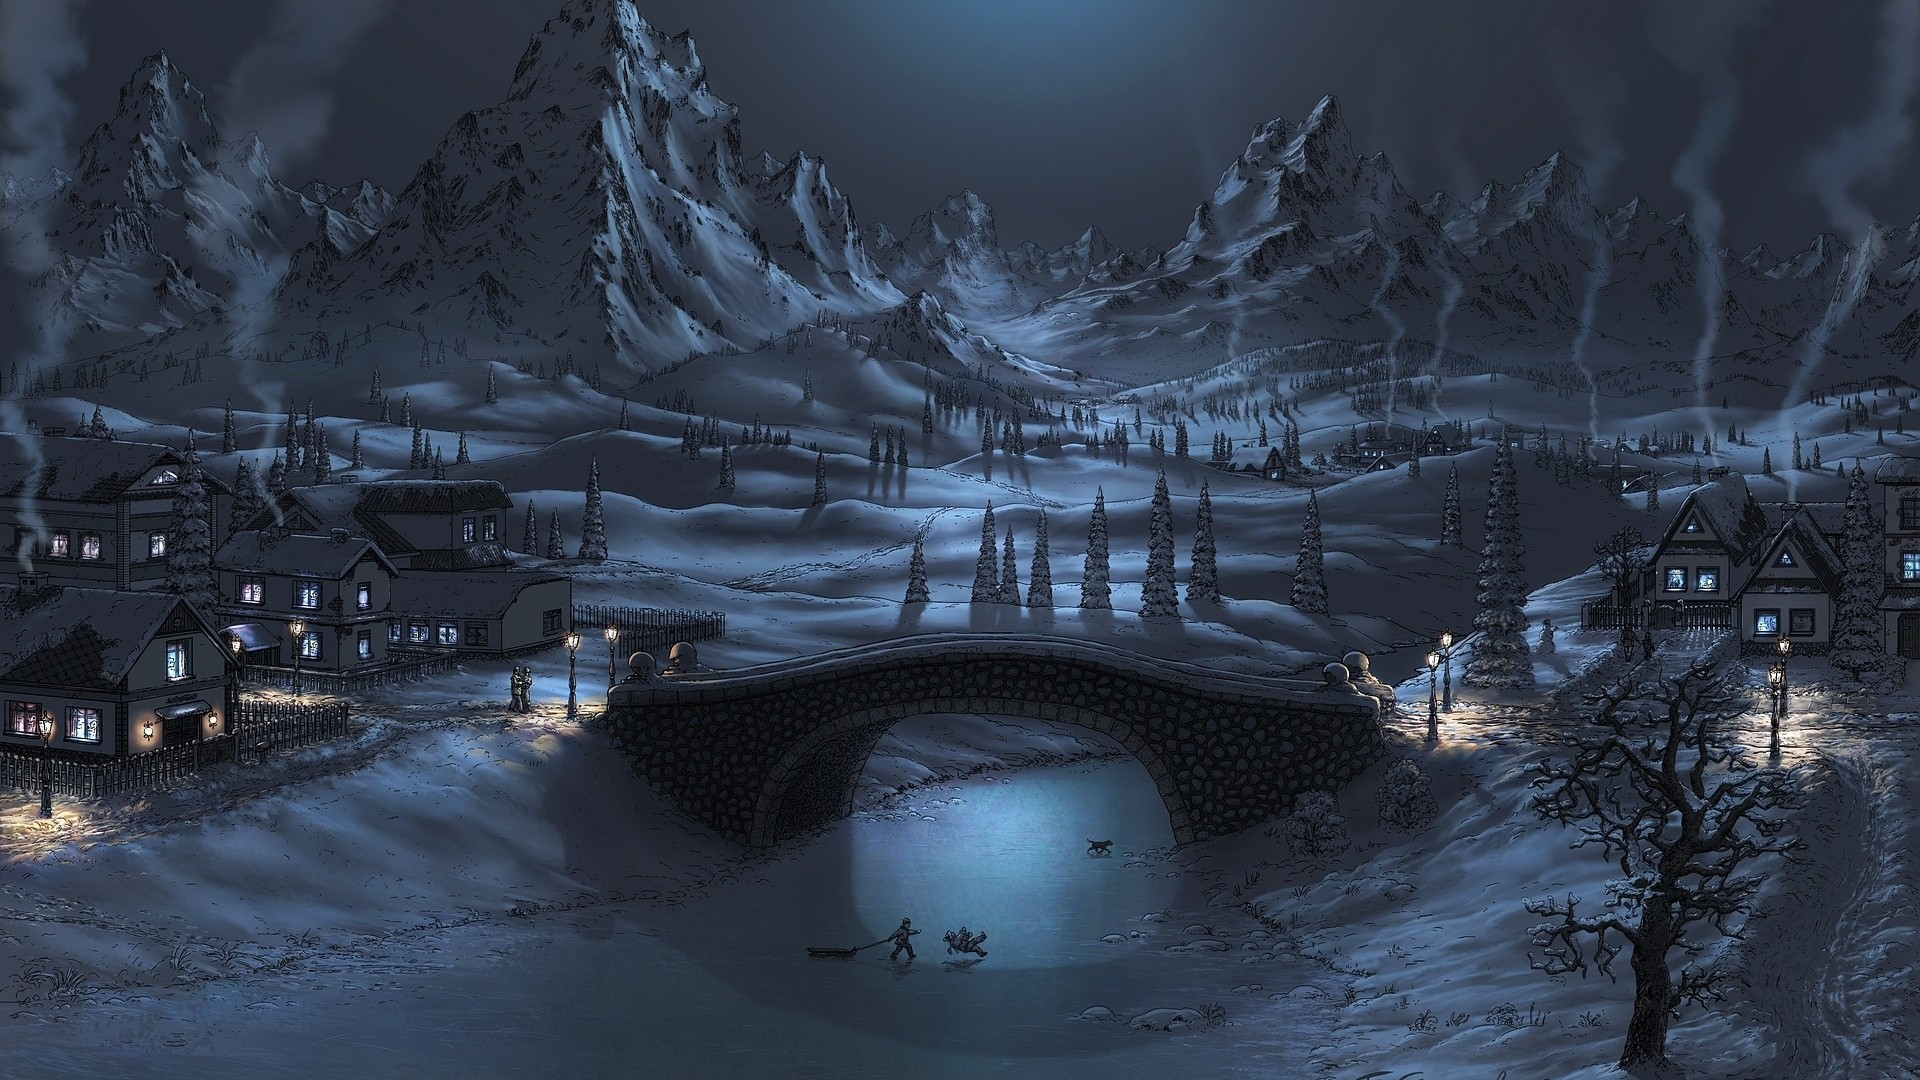 A beautiful work of art - the snow-covered town in the mountains